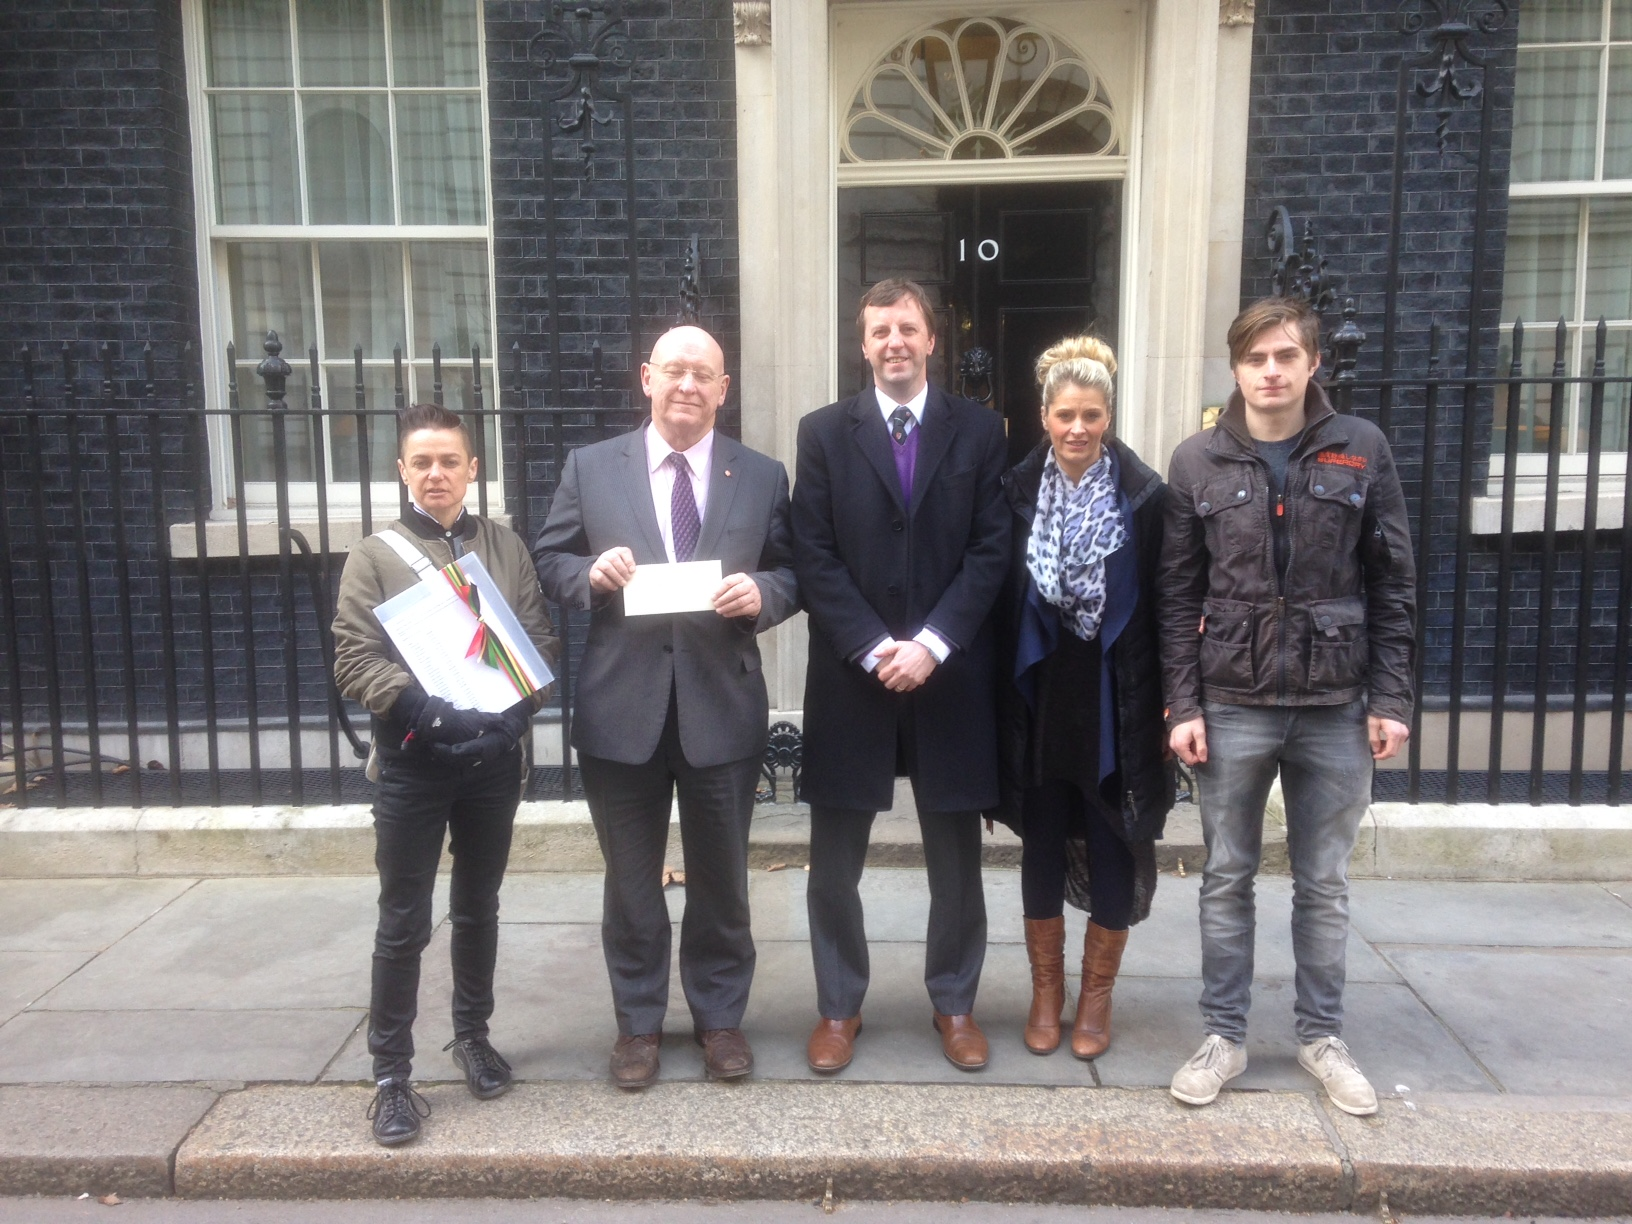 Hywel Williams MP and Jonathan Edwards MP, with Gwenith Owen – Petition Organiser; Nia Price – Mr Williams' constituent; Nathan Price – Mr Williams' constituent. Campaigners go to Downing Street to petition Prime Minister over driving licence